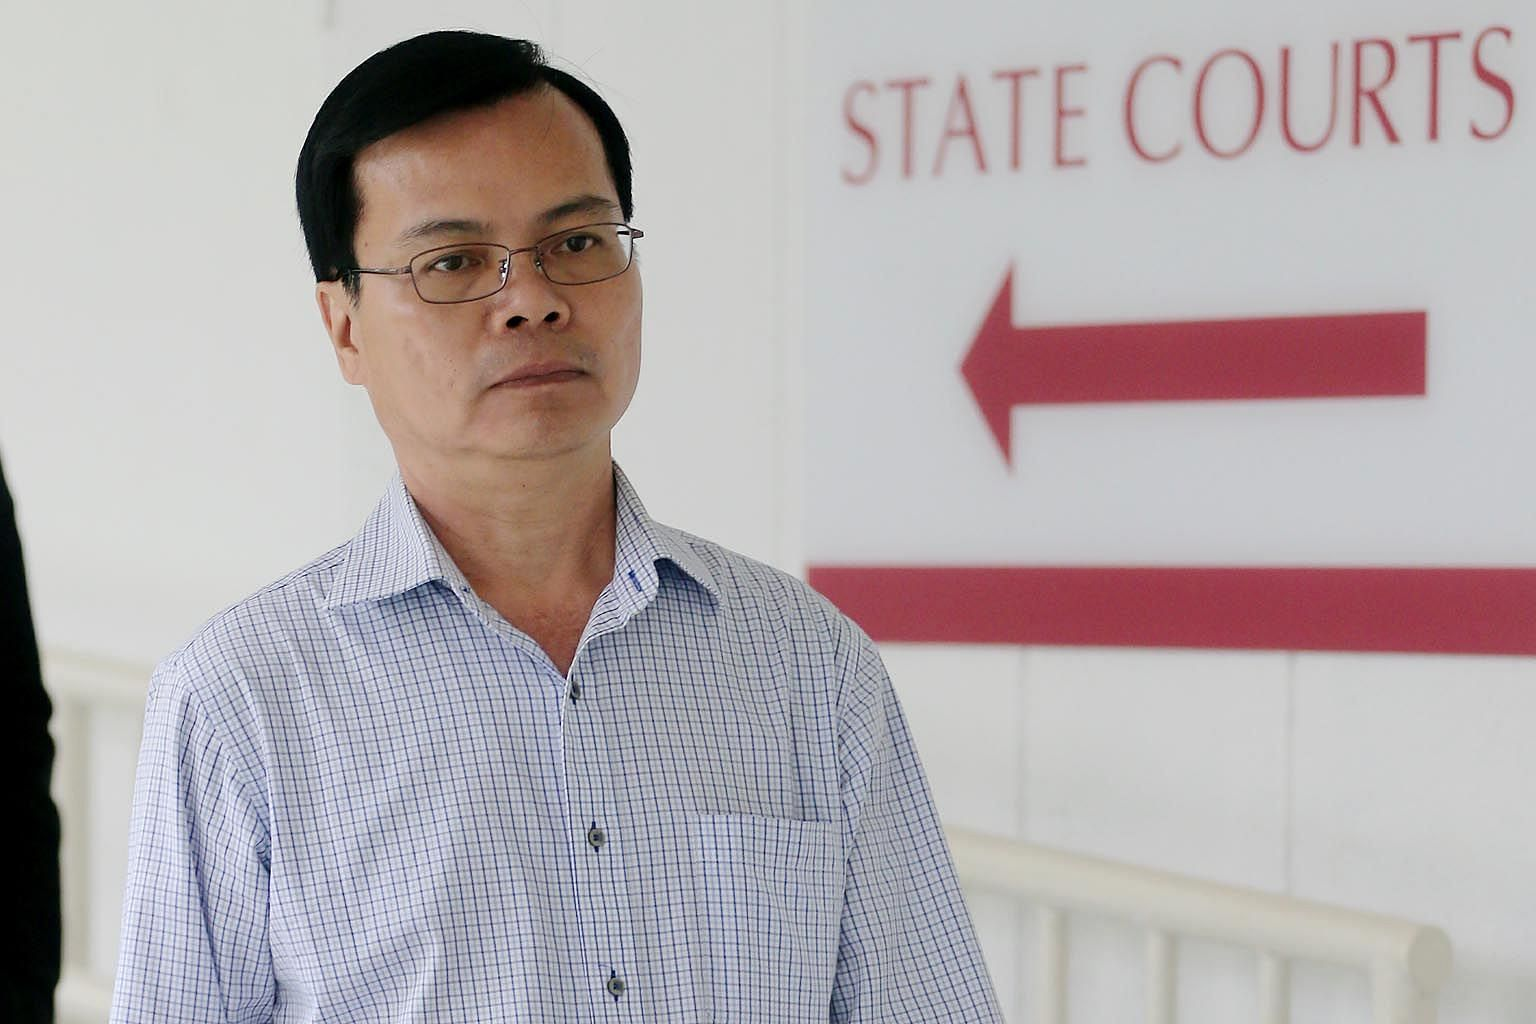 Wong Chee Meng (left), a former general manager and secretary of Ang Mo Kio Town Council, faces 55 counts of corruptly accepting gratification from Chia Sin Lan, the director and shareholder of 19-ANC Enterprise and 19-NS2 Enterprise.